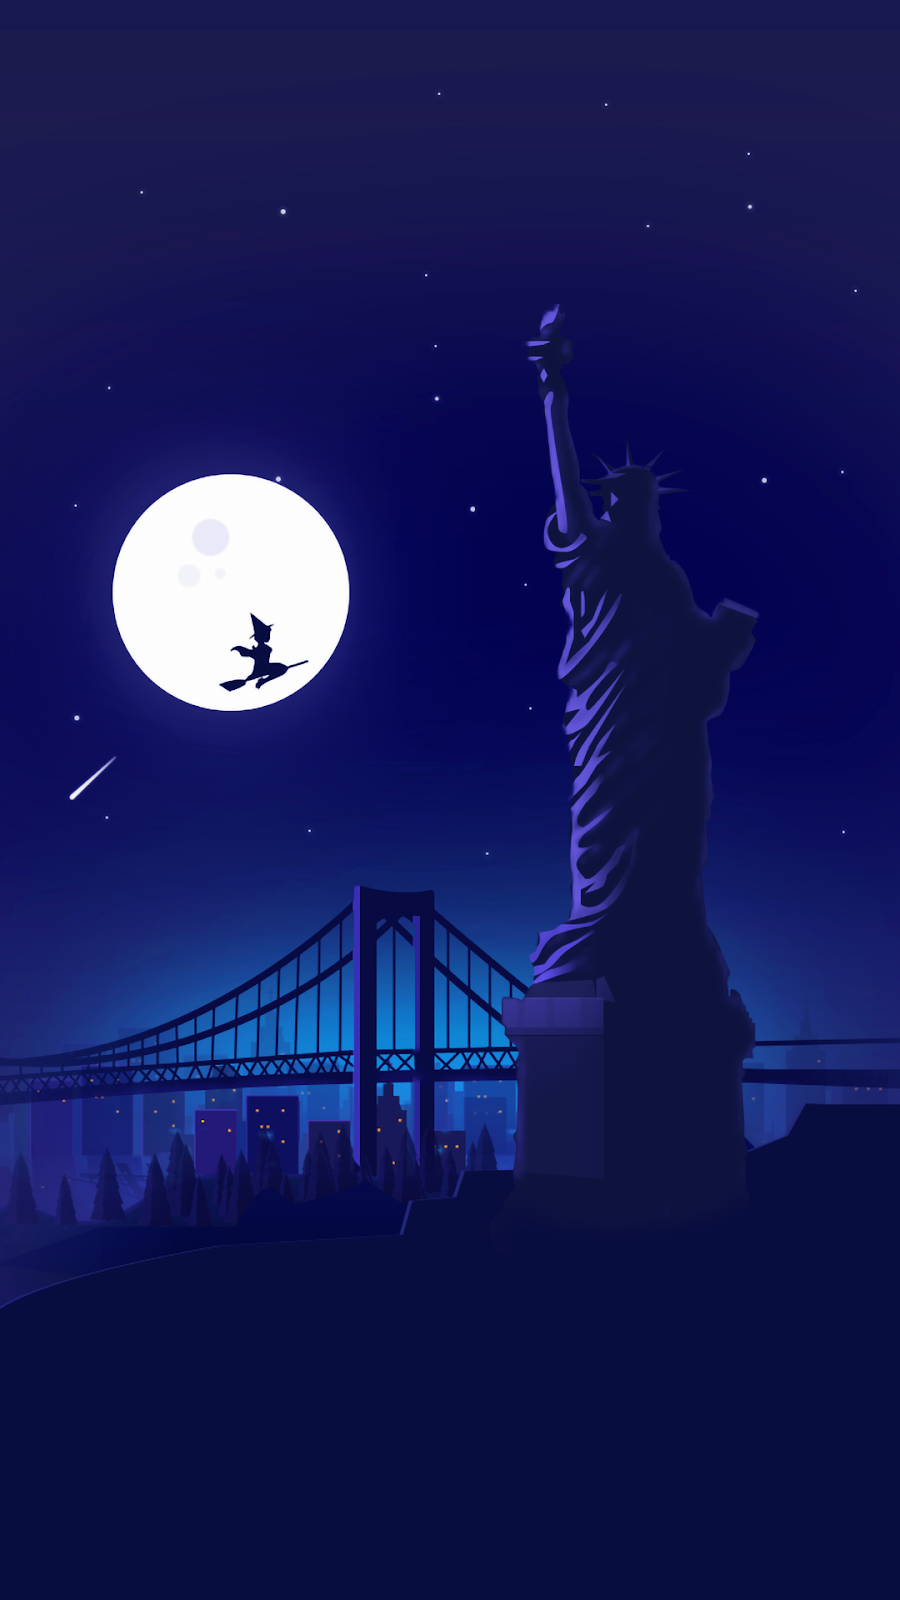 Statue of Liberty minimalist wallpaper